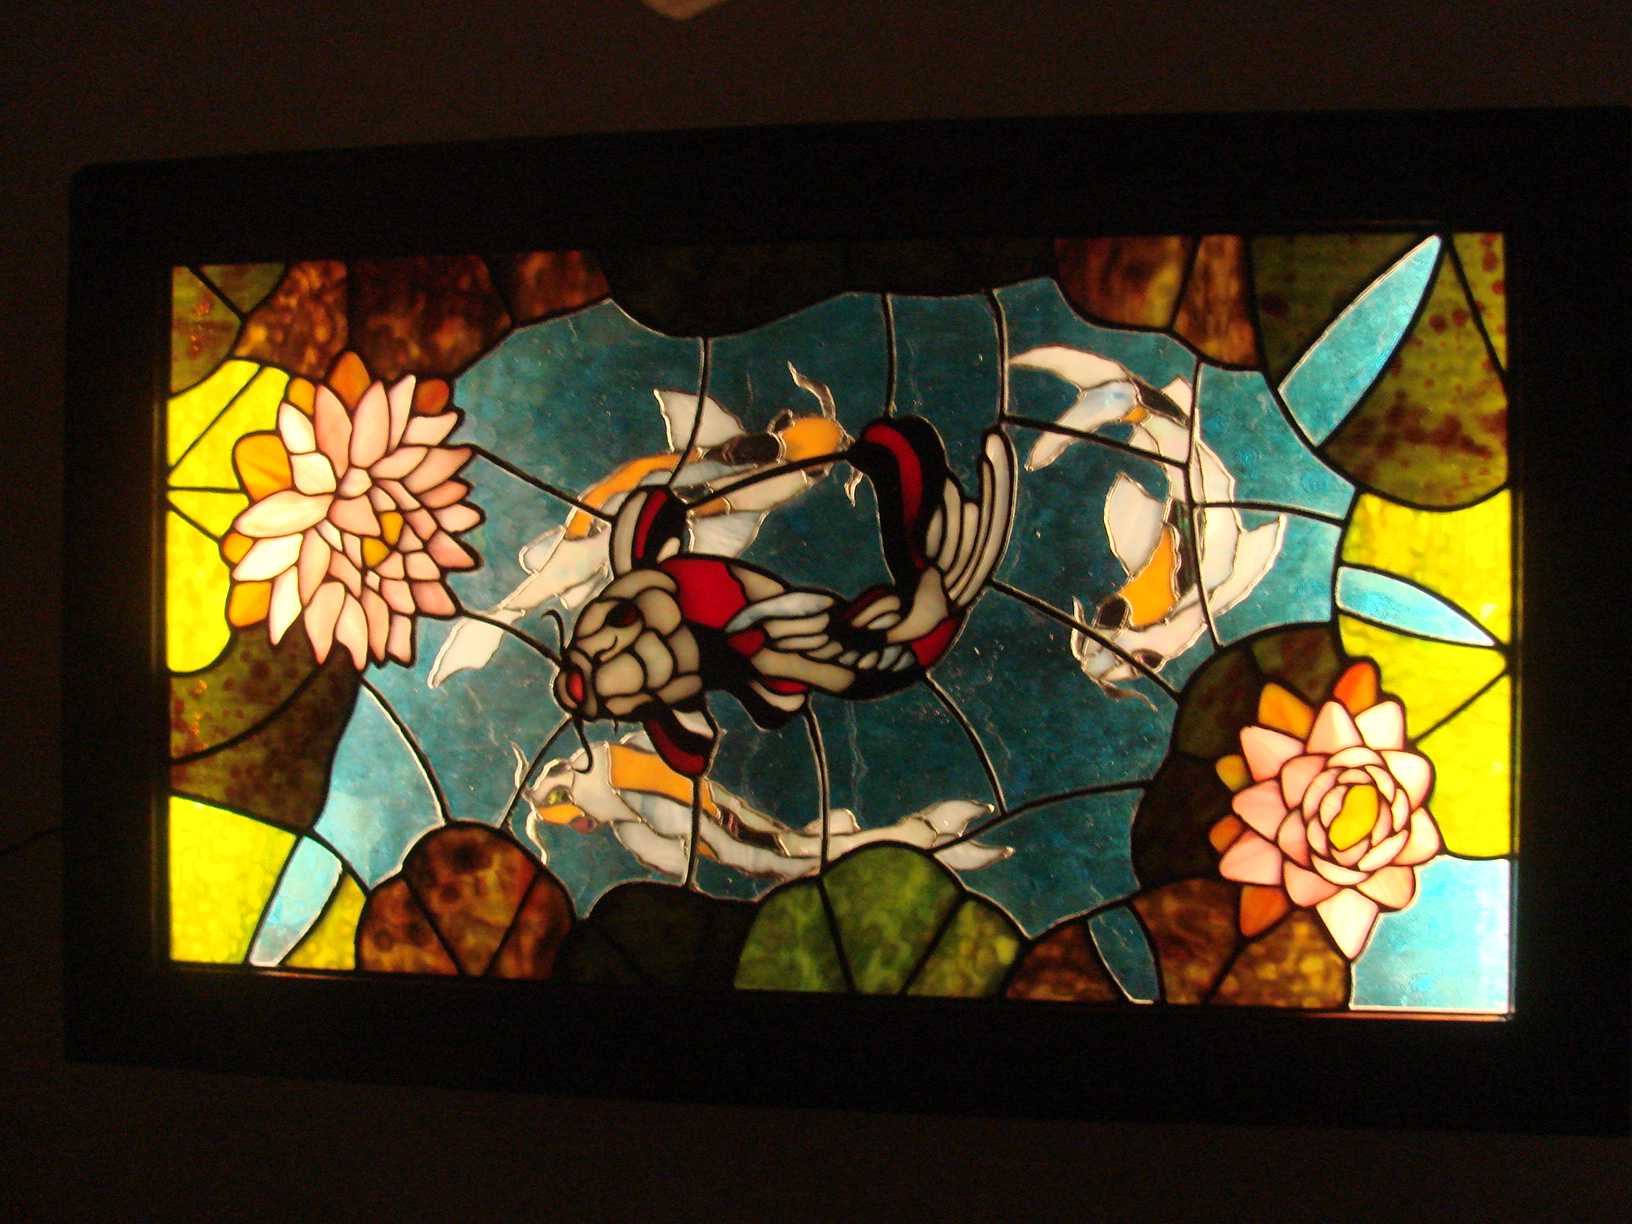 Koi Pond, LED lighted, 3D stained glass in antique wood showcase, 3ft h x 1ft,10in w x 4in deep